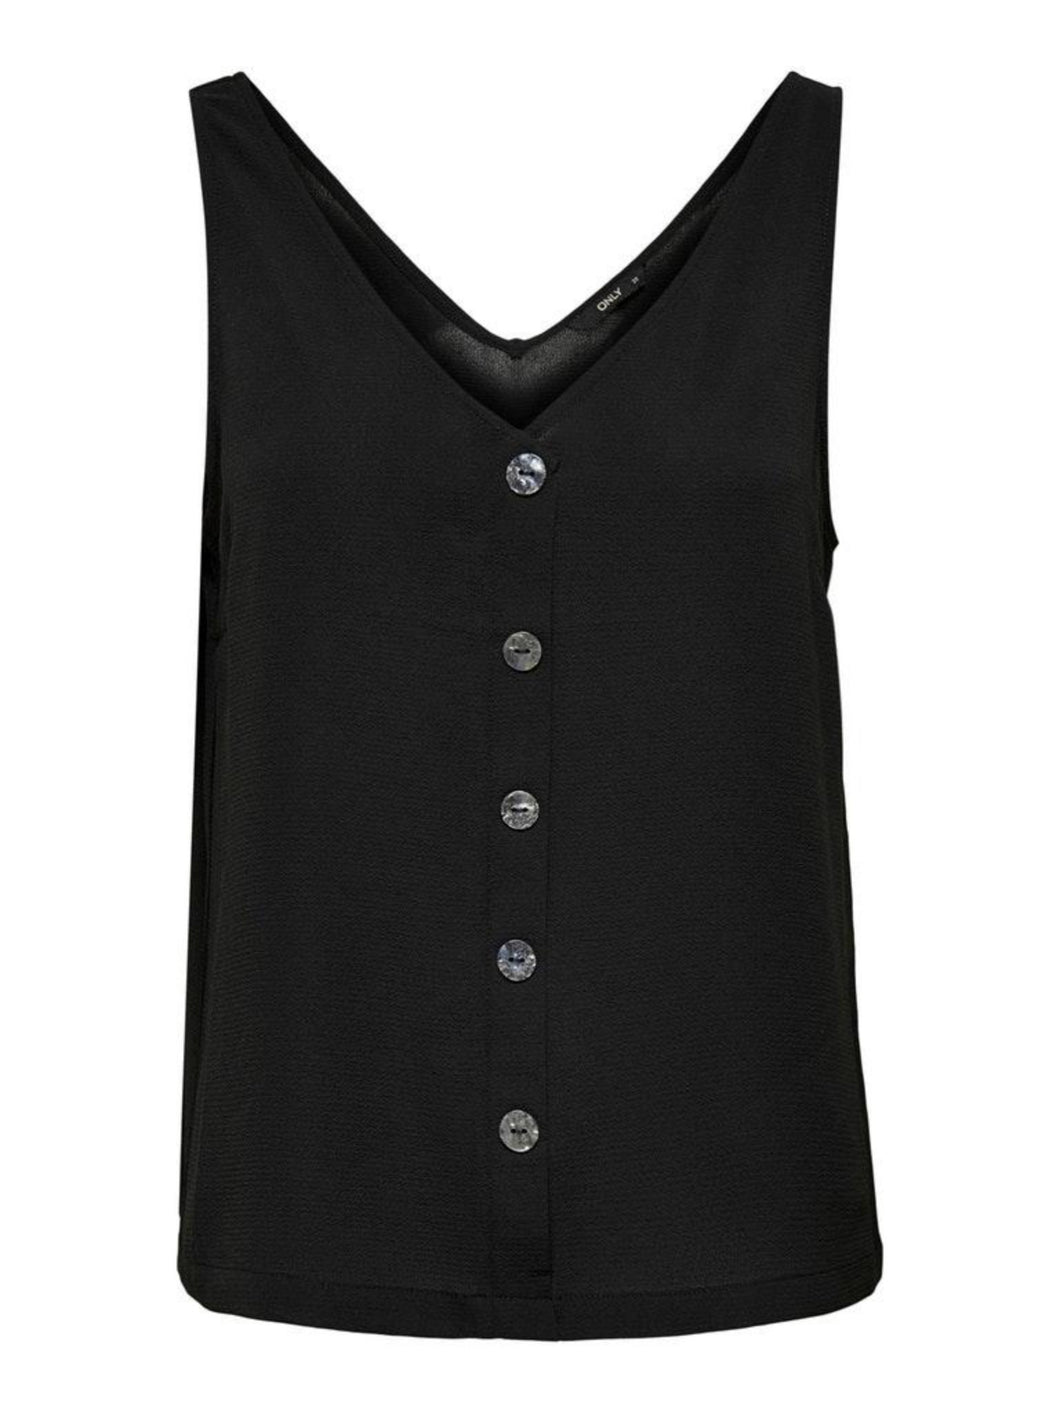 Nova Lux Button Top - Black / 34 - TOPPAR 34, 36, 38, 40, 42